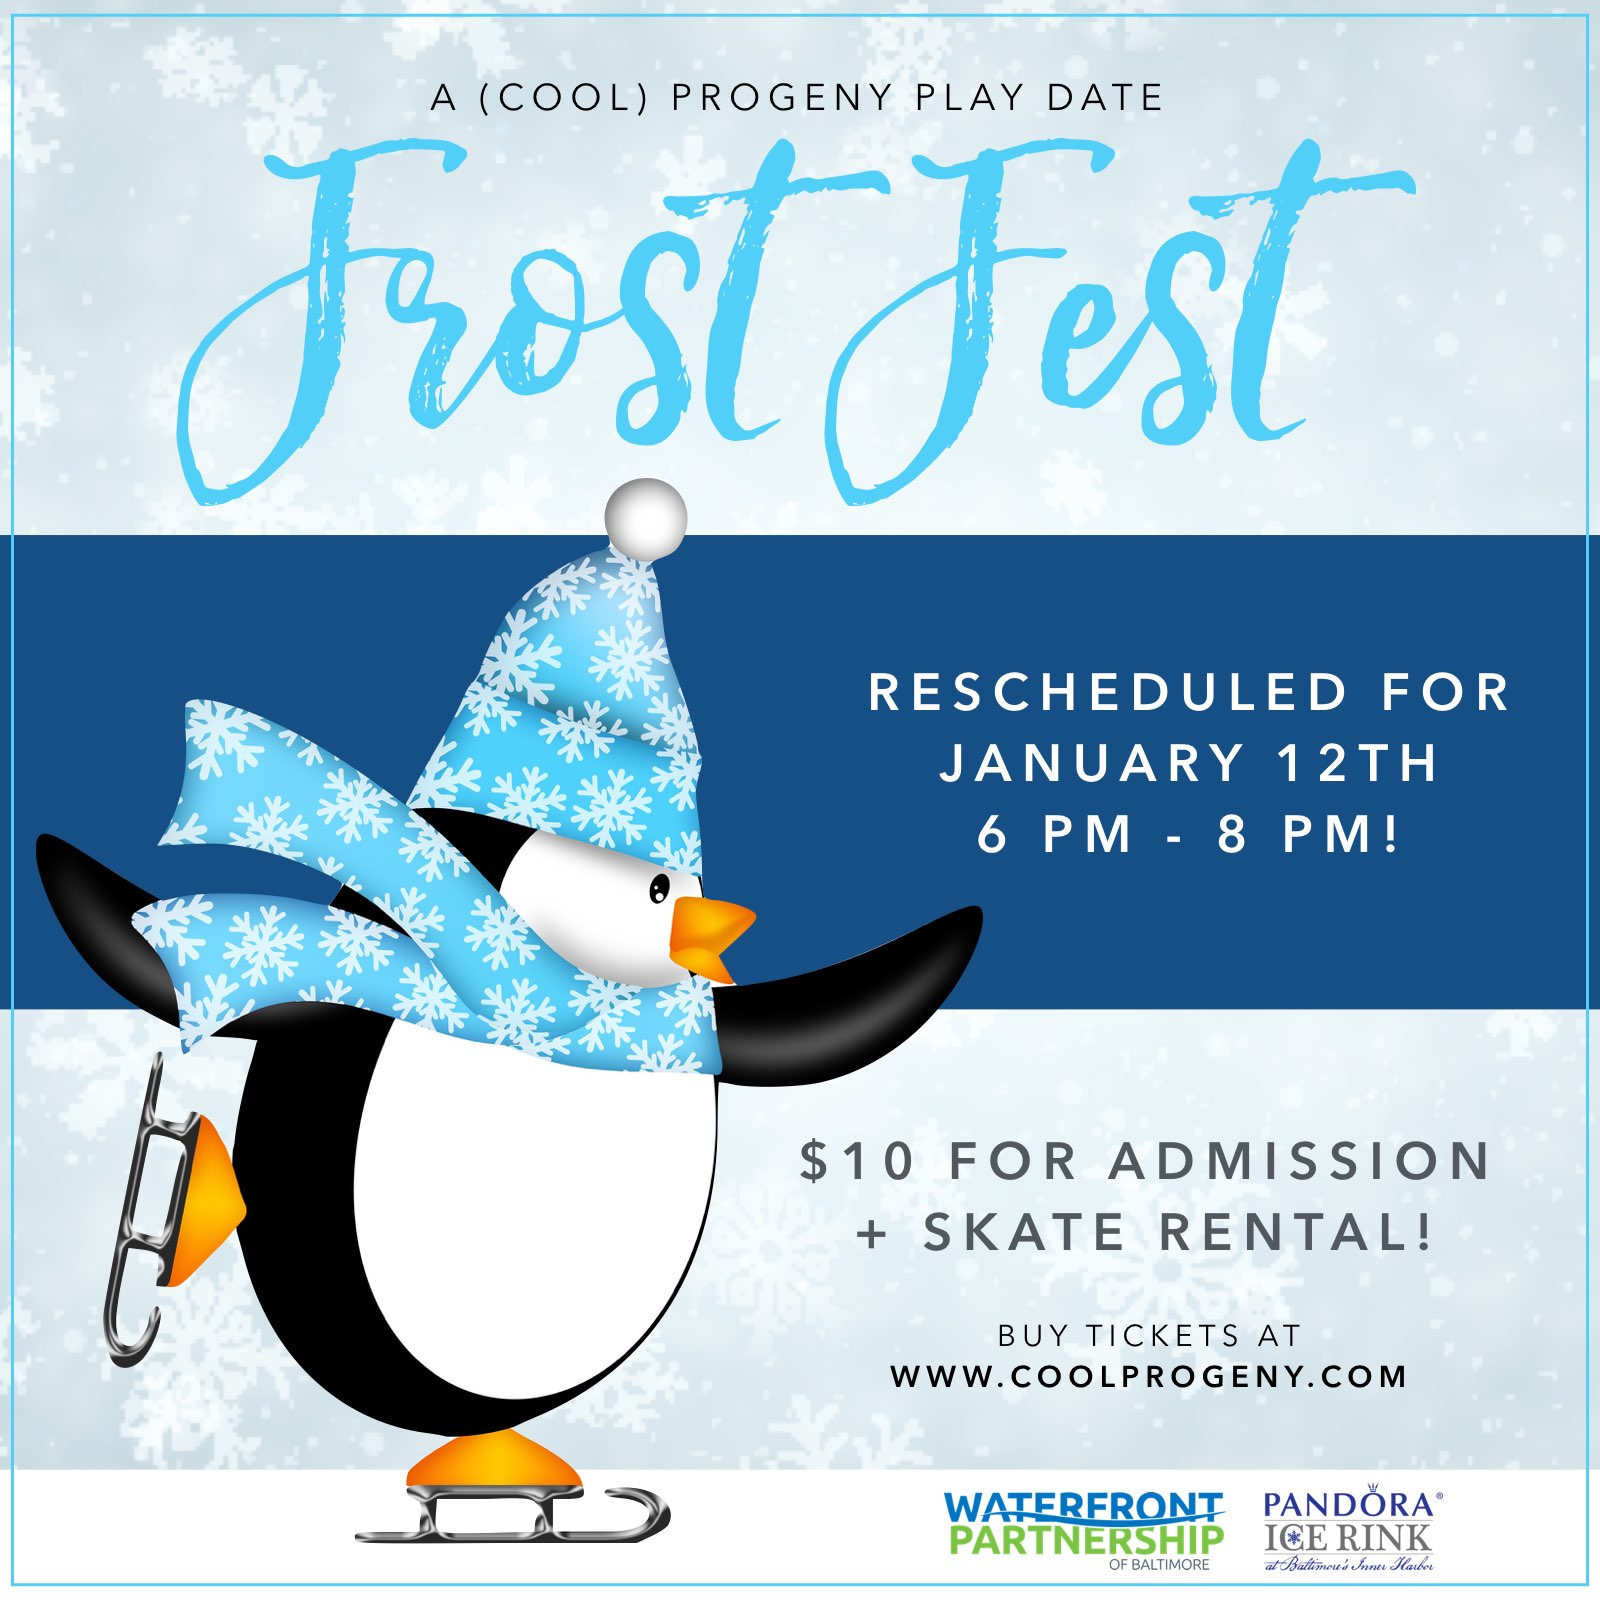 Frost Fest: A (cool) progeny play date with waterfront partnership